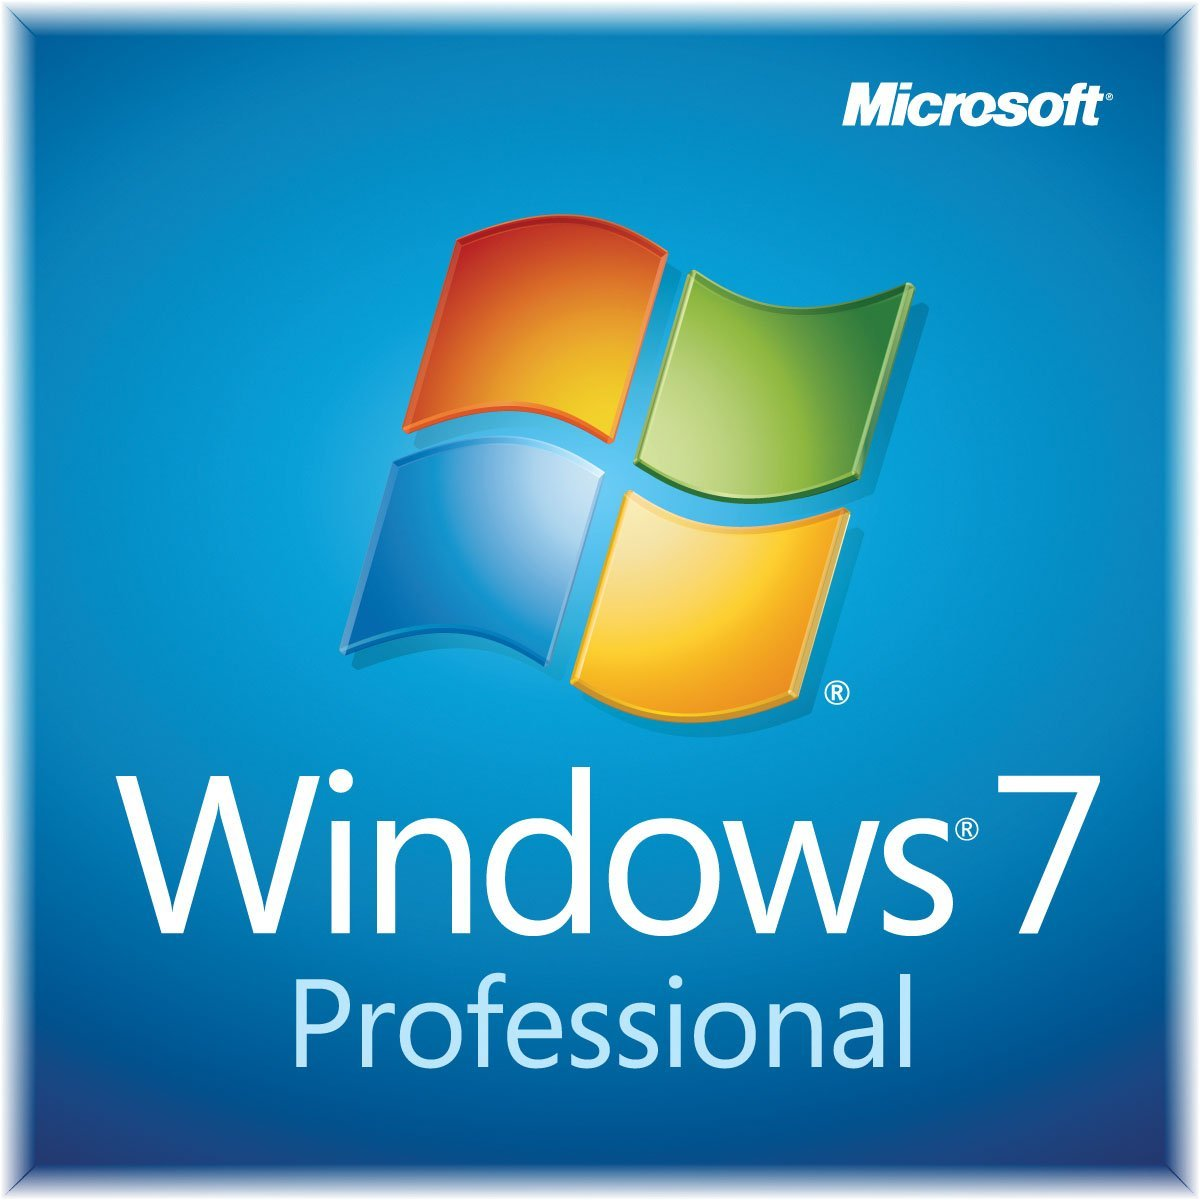 Downloading an iso for windows 7 pro 64 bit microsoft community.